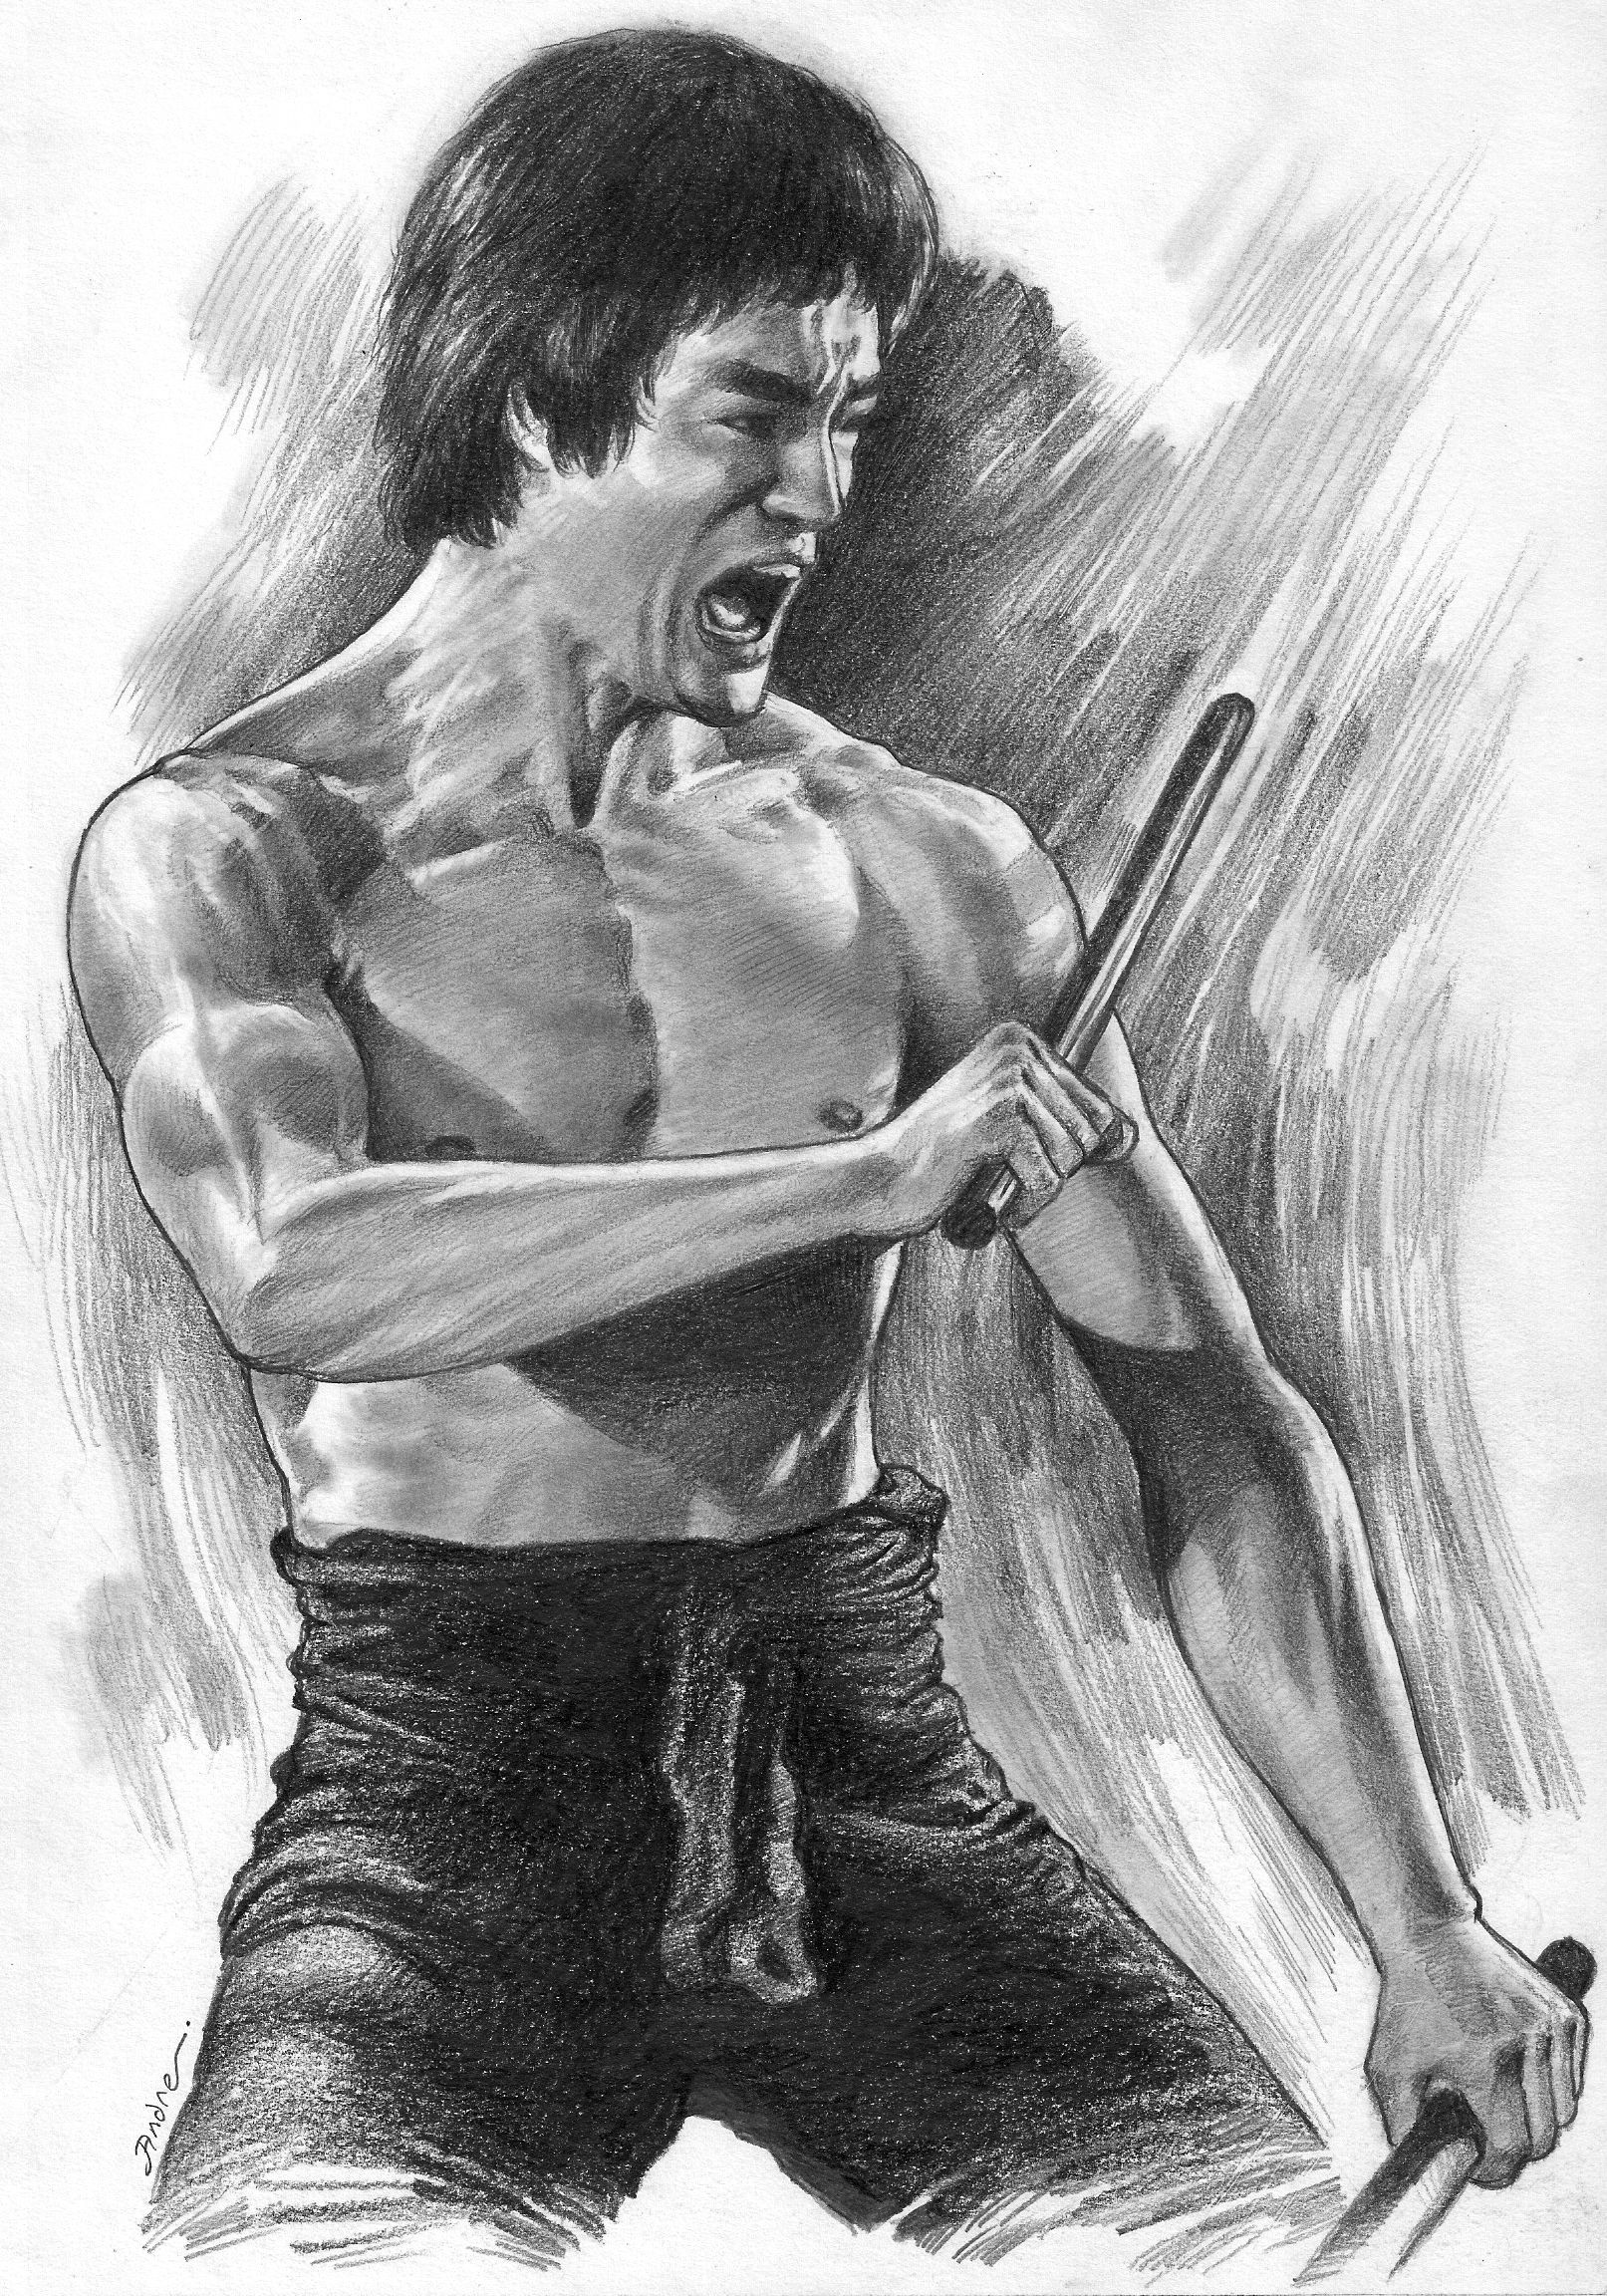 Wow Awesome Drawing On My Idol Rear Amazing Art Work Came Out Really Very Good Who S The Artists B Bruce Lee Art Bruce Lee Martial Arts Bruce Lee